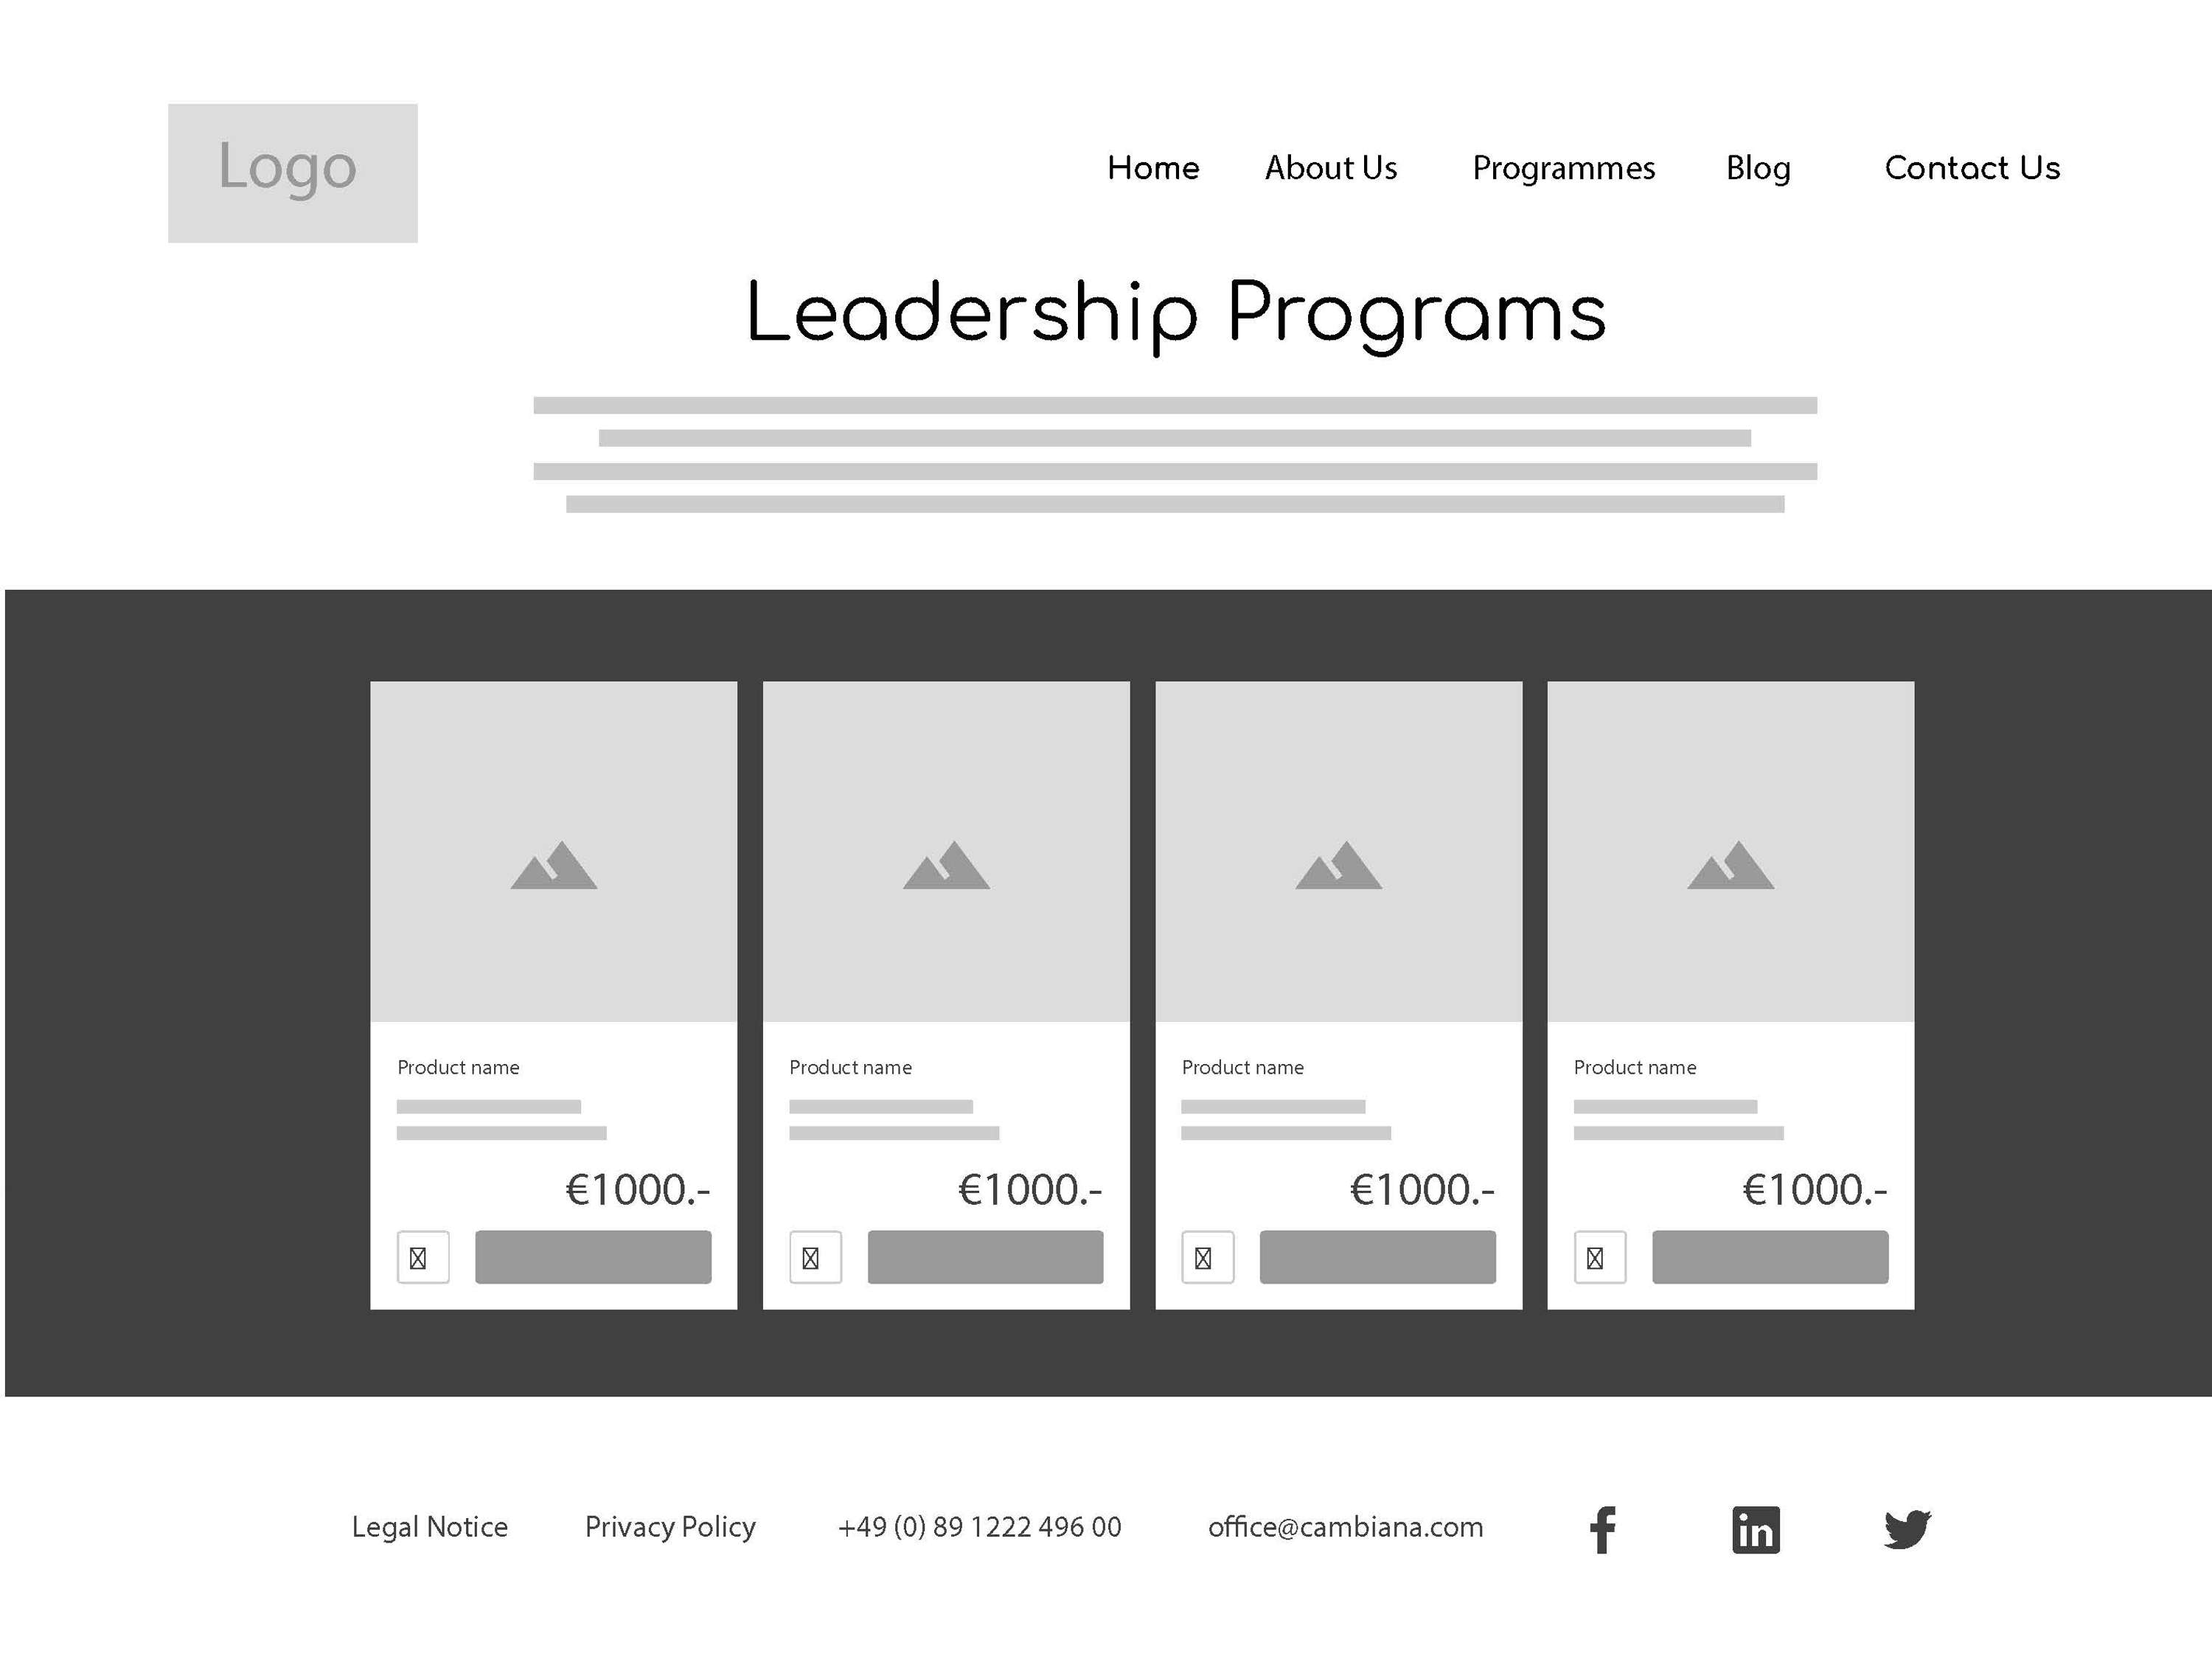 Cambiana Website Wireframes | The Dots